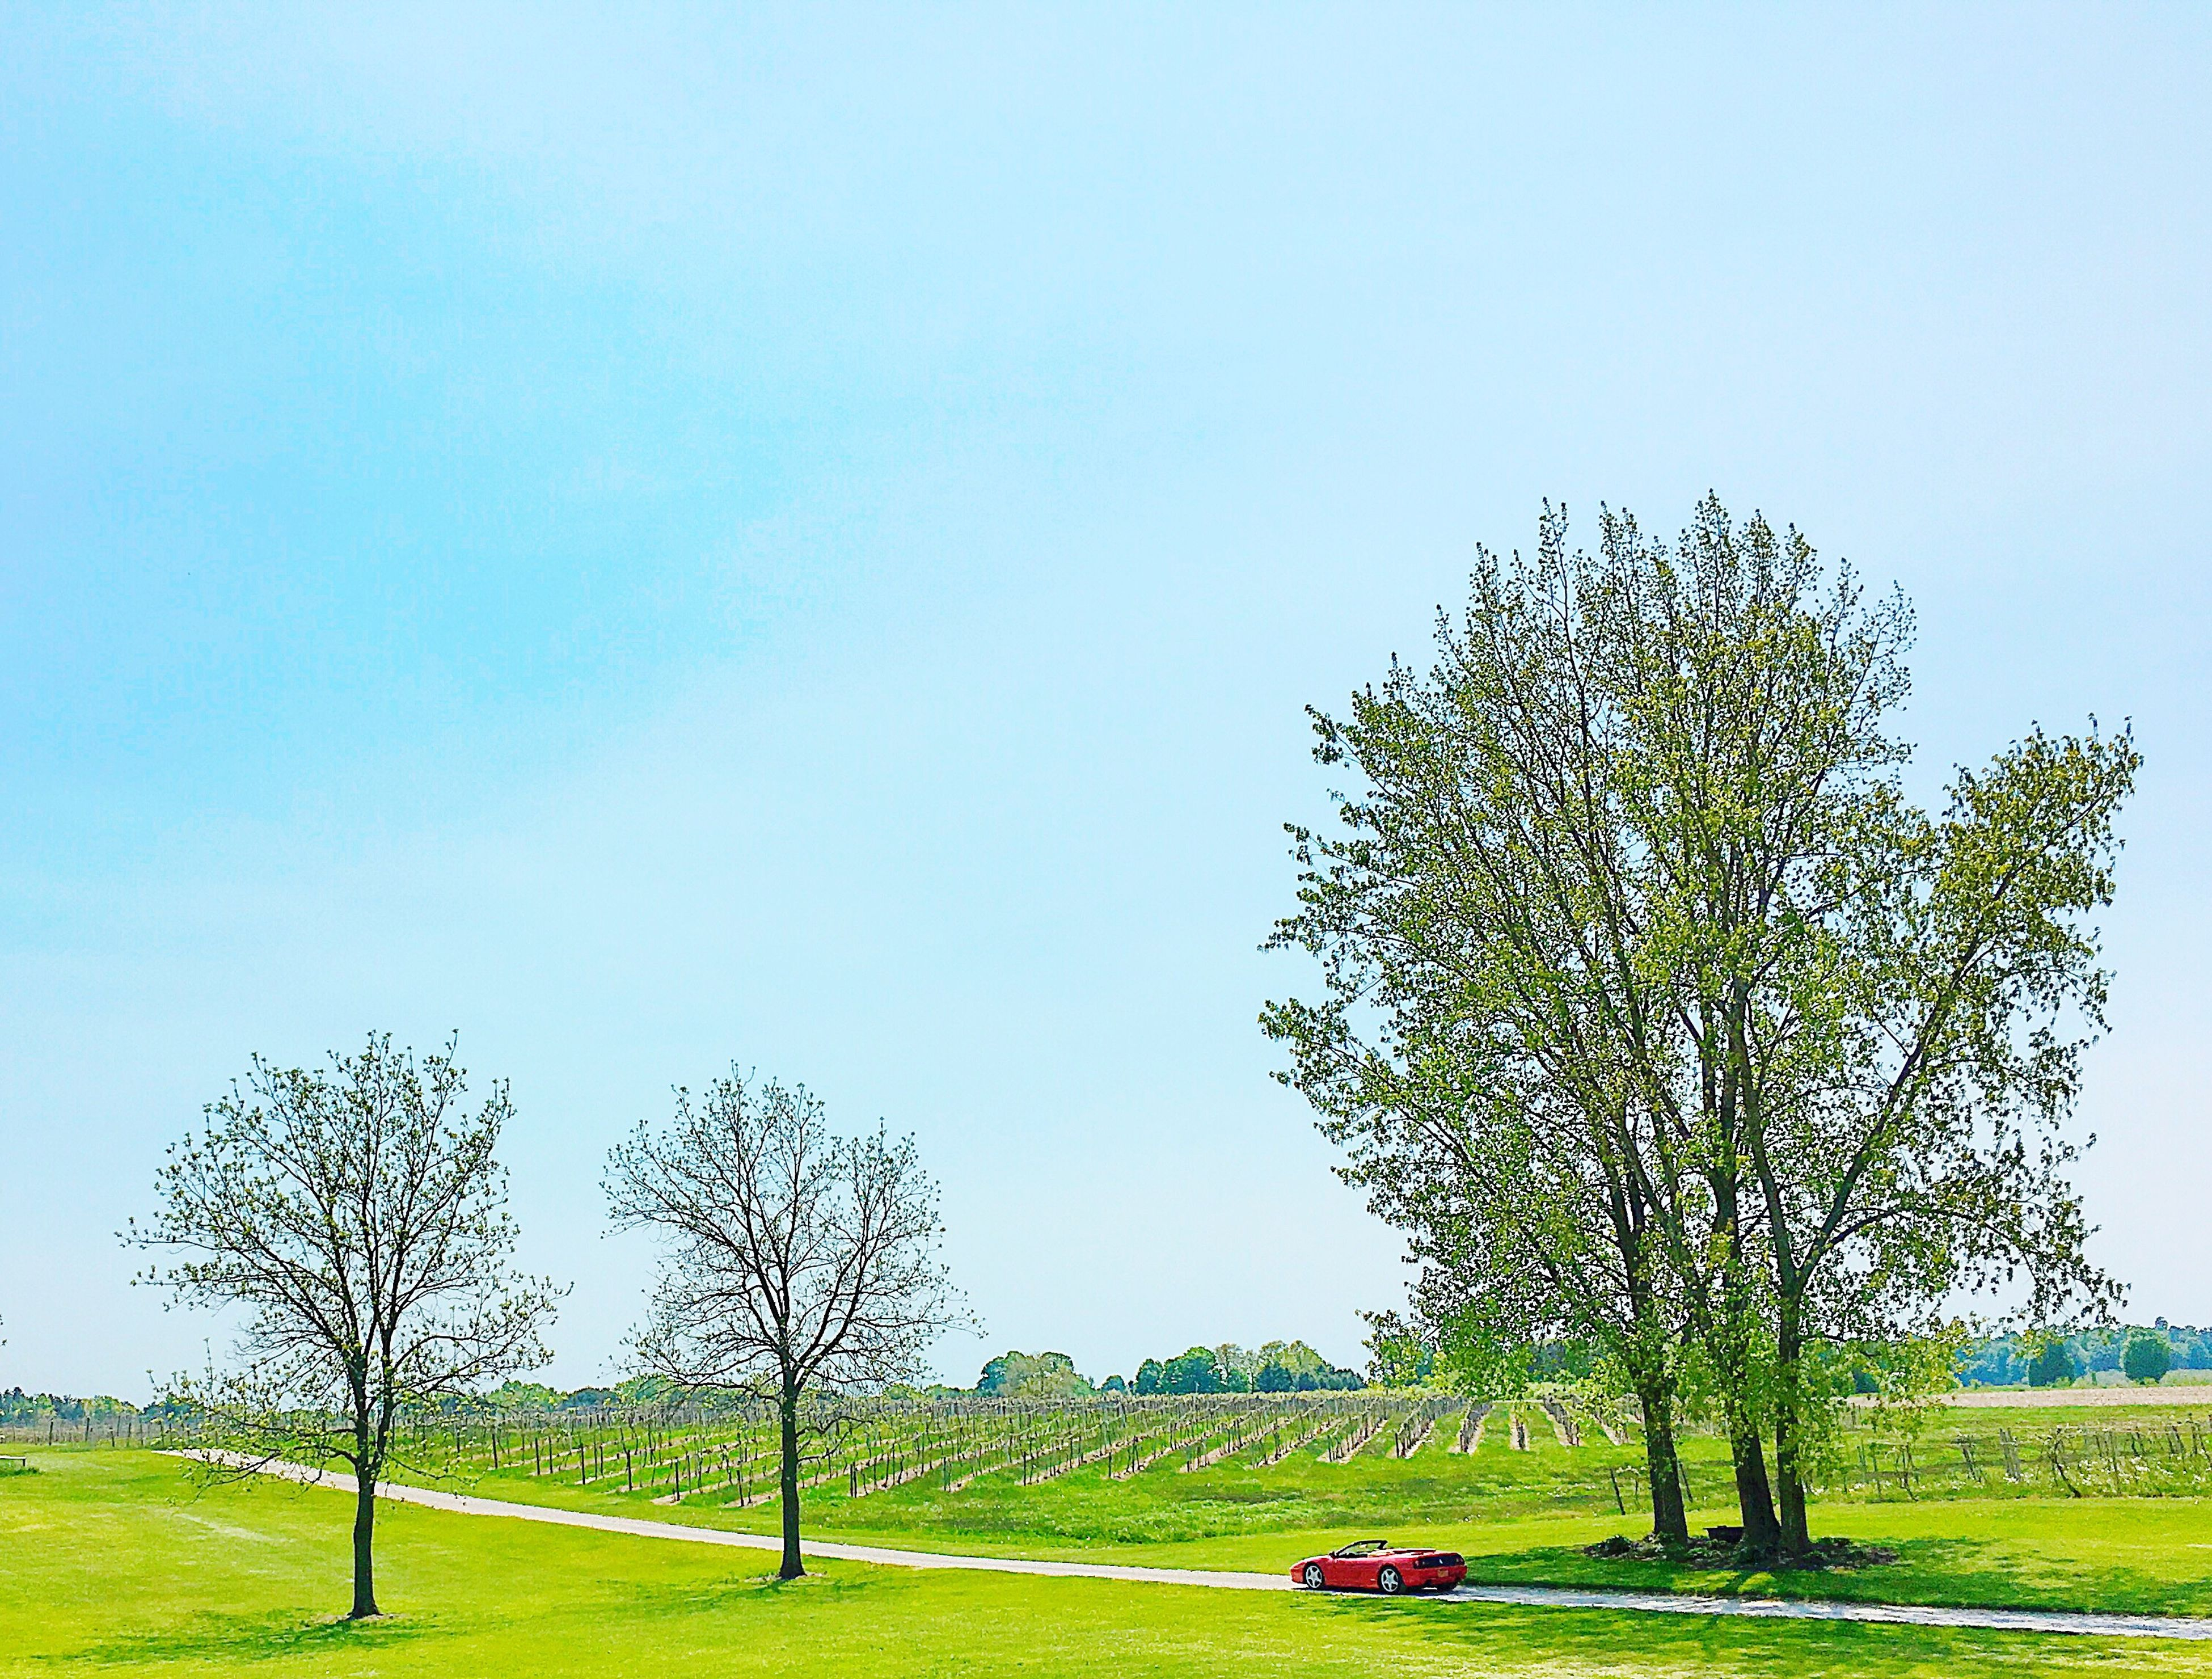 grass, clear sky, tree, field, copy space, landscape, grassy, green color, tranquility, growth, nature, tranquil scene, beauty in nature, blue, scenics, branch, sky, day, park - man made space, meadow